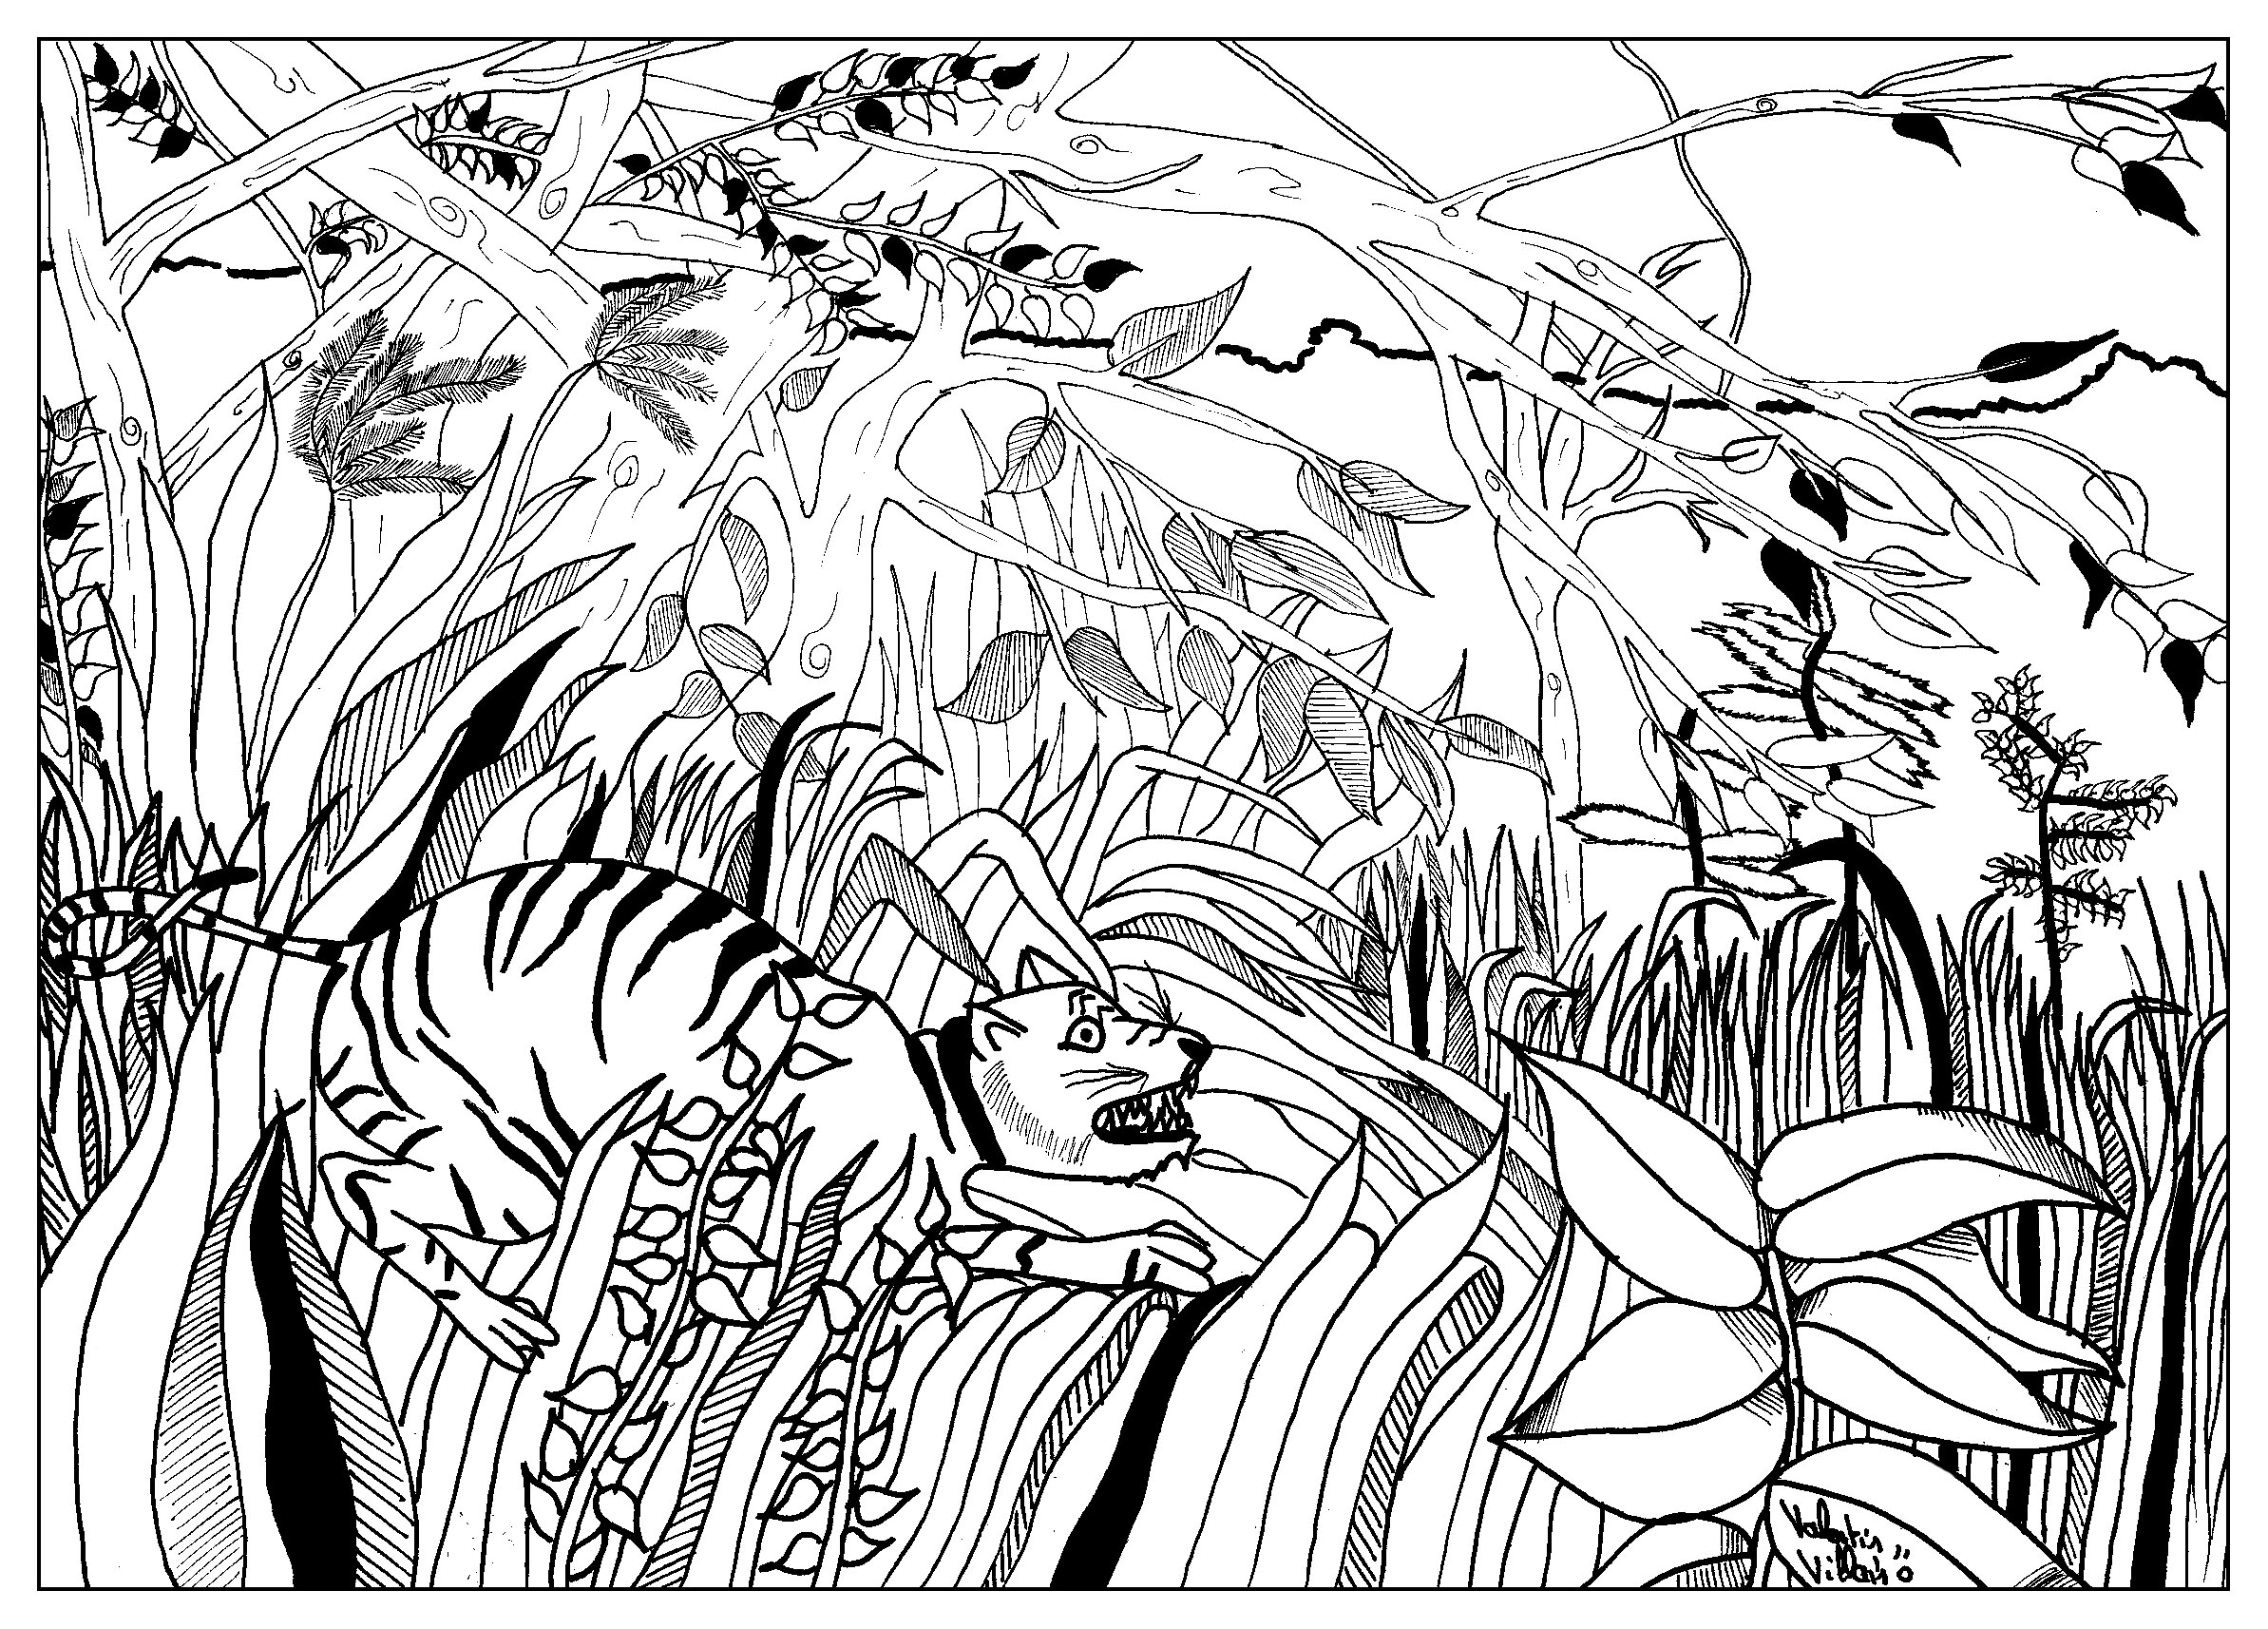 Coloring page inspired by 'Surpris !' by French artist Henri Rousseau